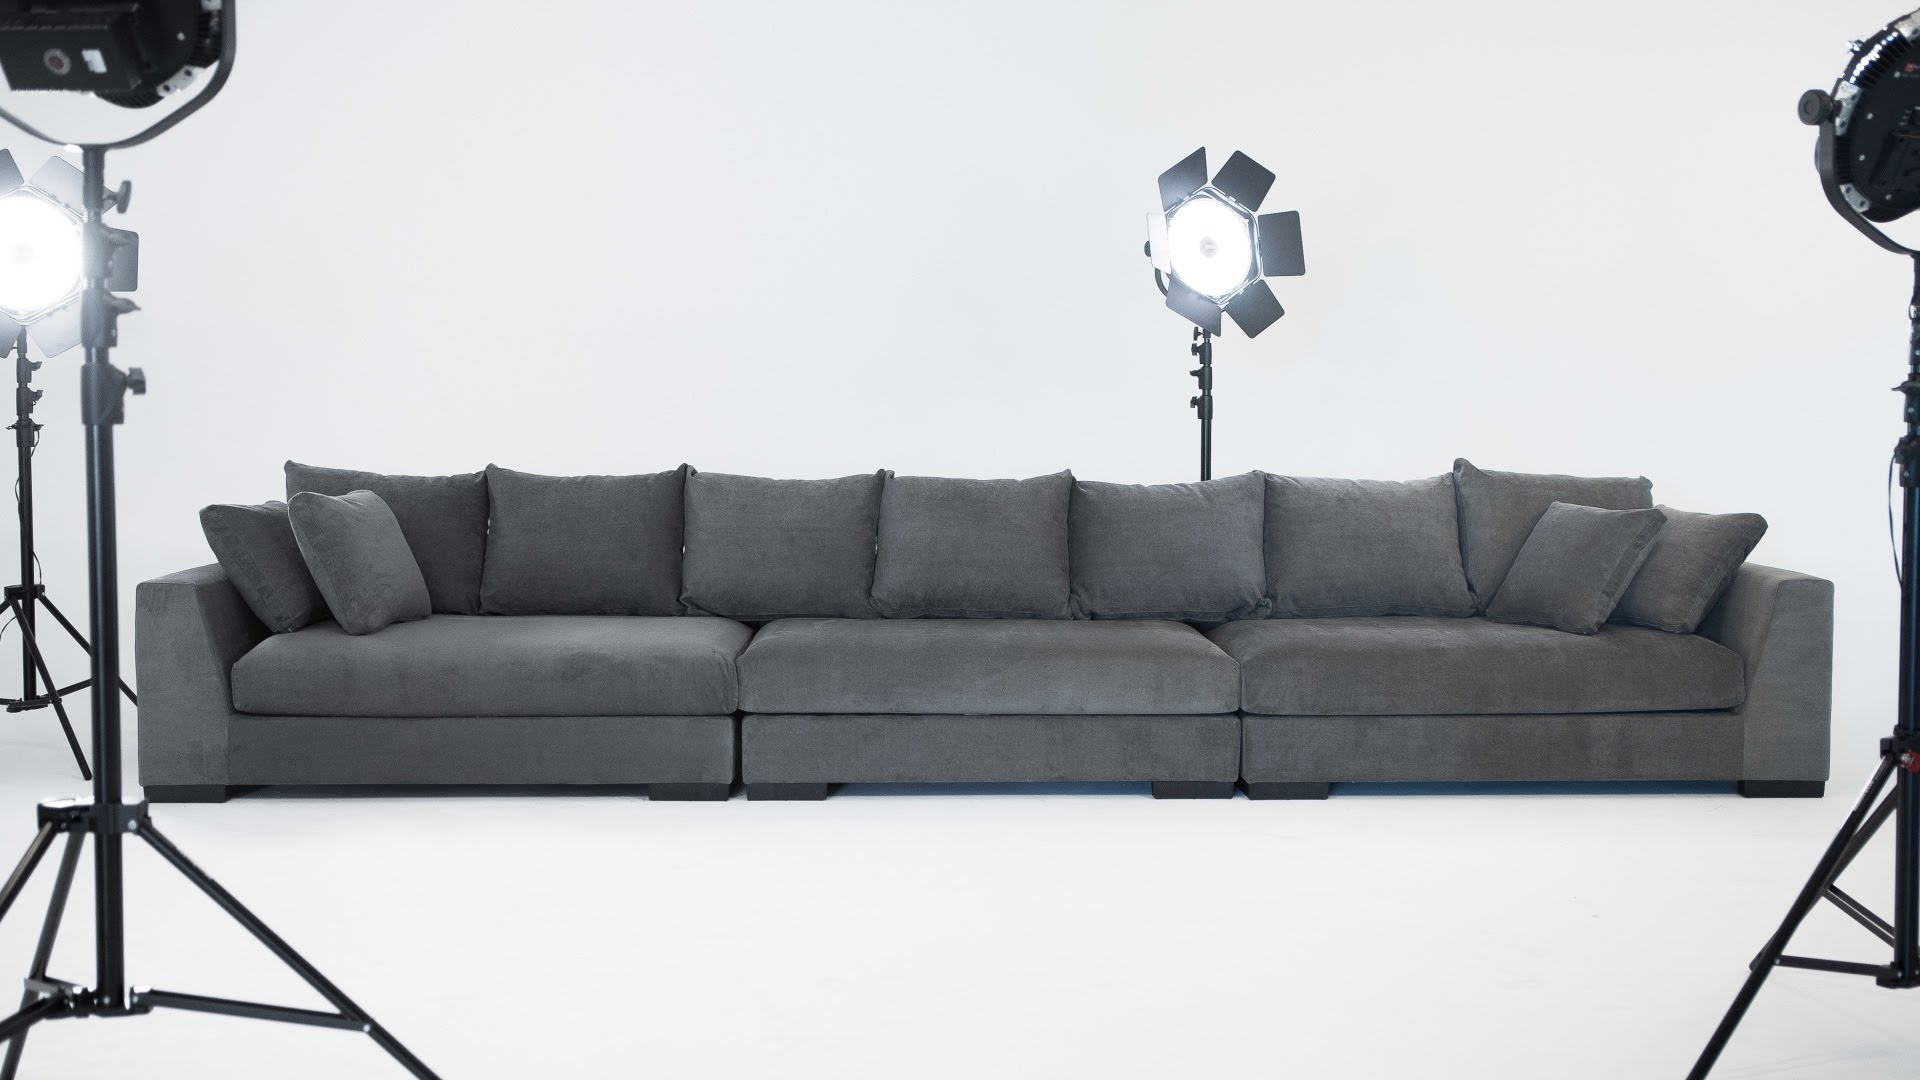 The Cooper Sectional Sofa - Structube - Youtube regarding Structube Sectional Sofas (Image 7 of 10)